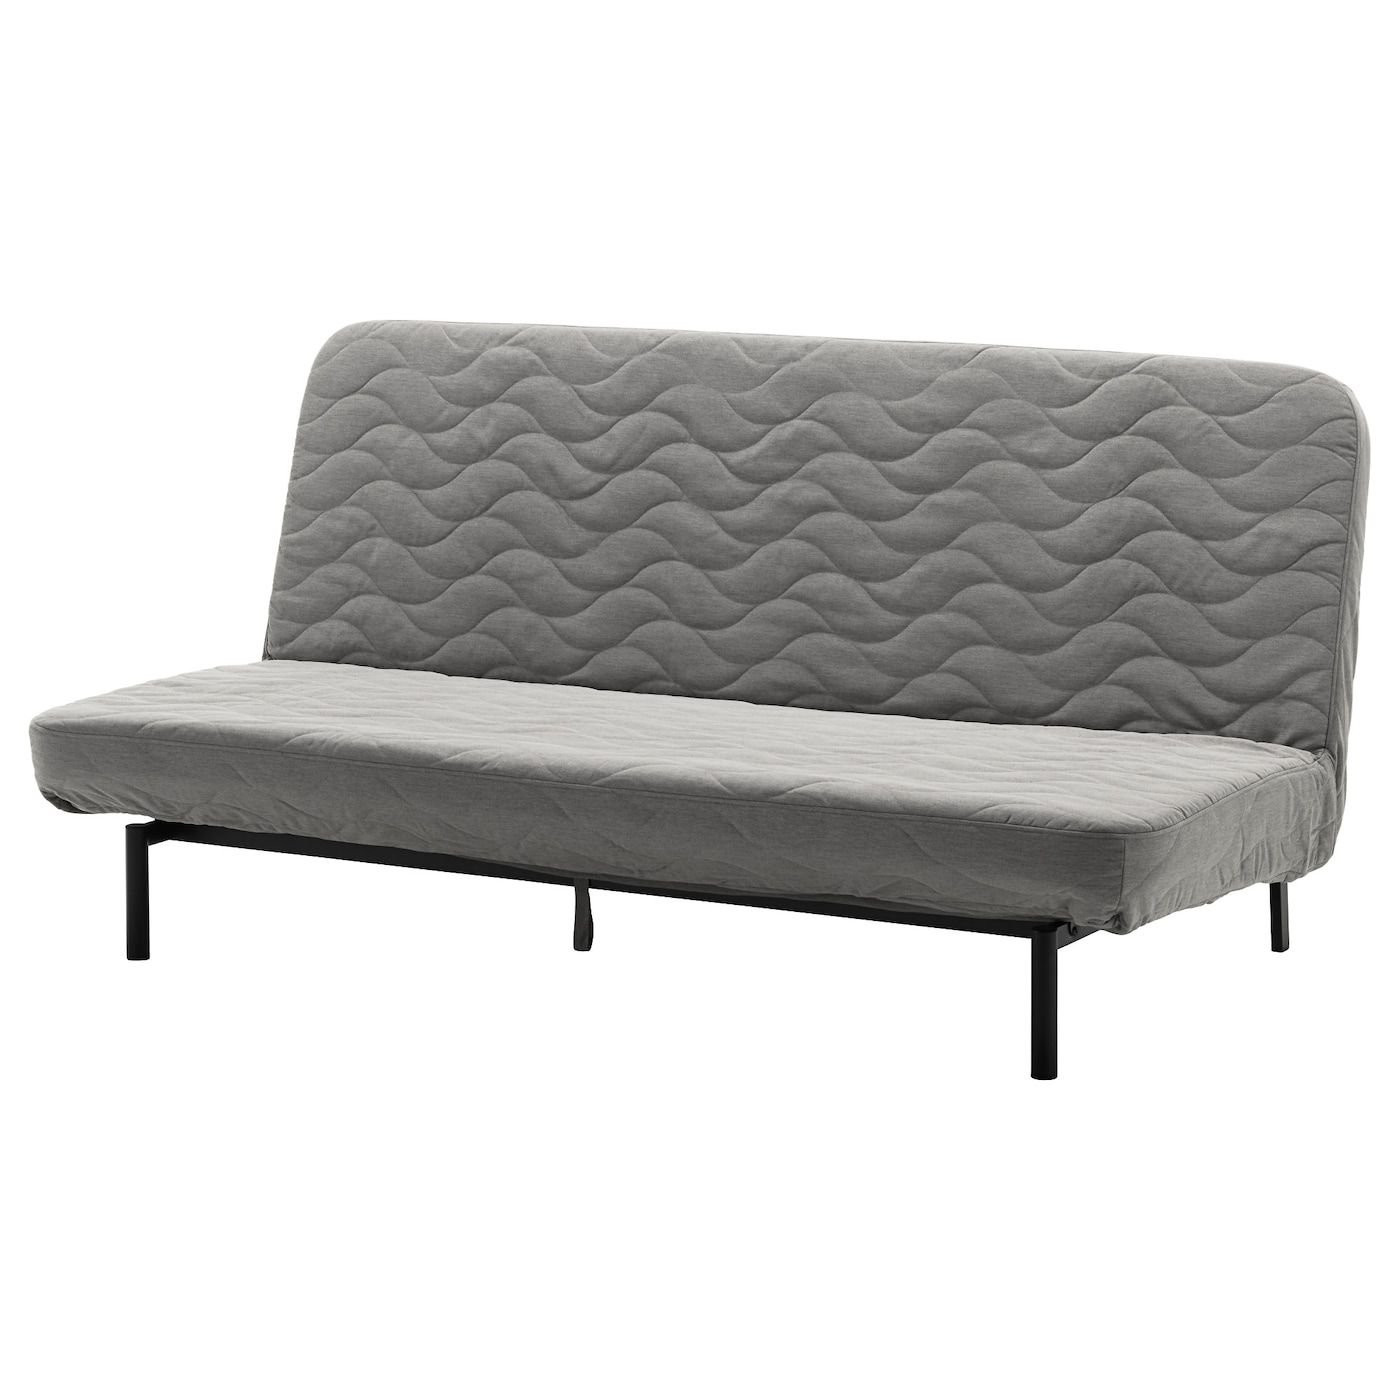 nyhamn 3 seat sofa bed with pocket spring mattress knisa grey beige ikea. Black Bedroom Furniture Sets. Home Design Ideas